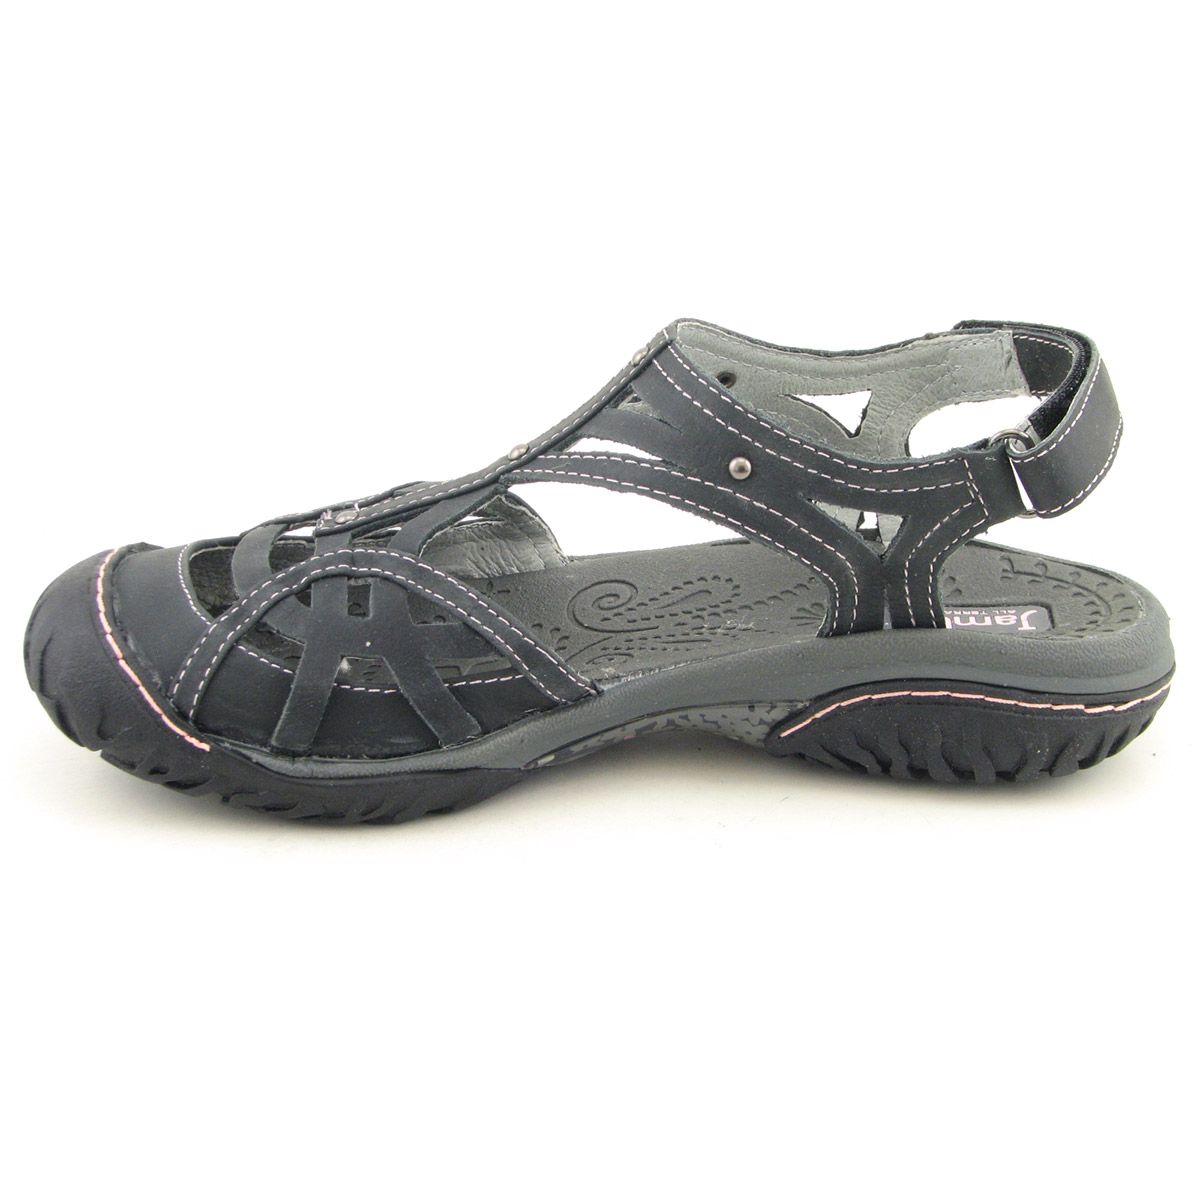 Details about JAMBU Coconut Black Sandals Shoes Womens Size 7